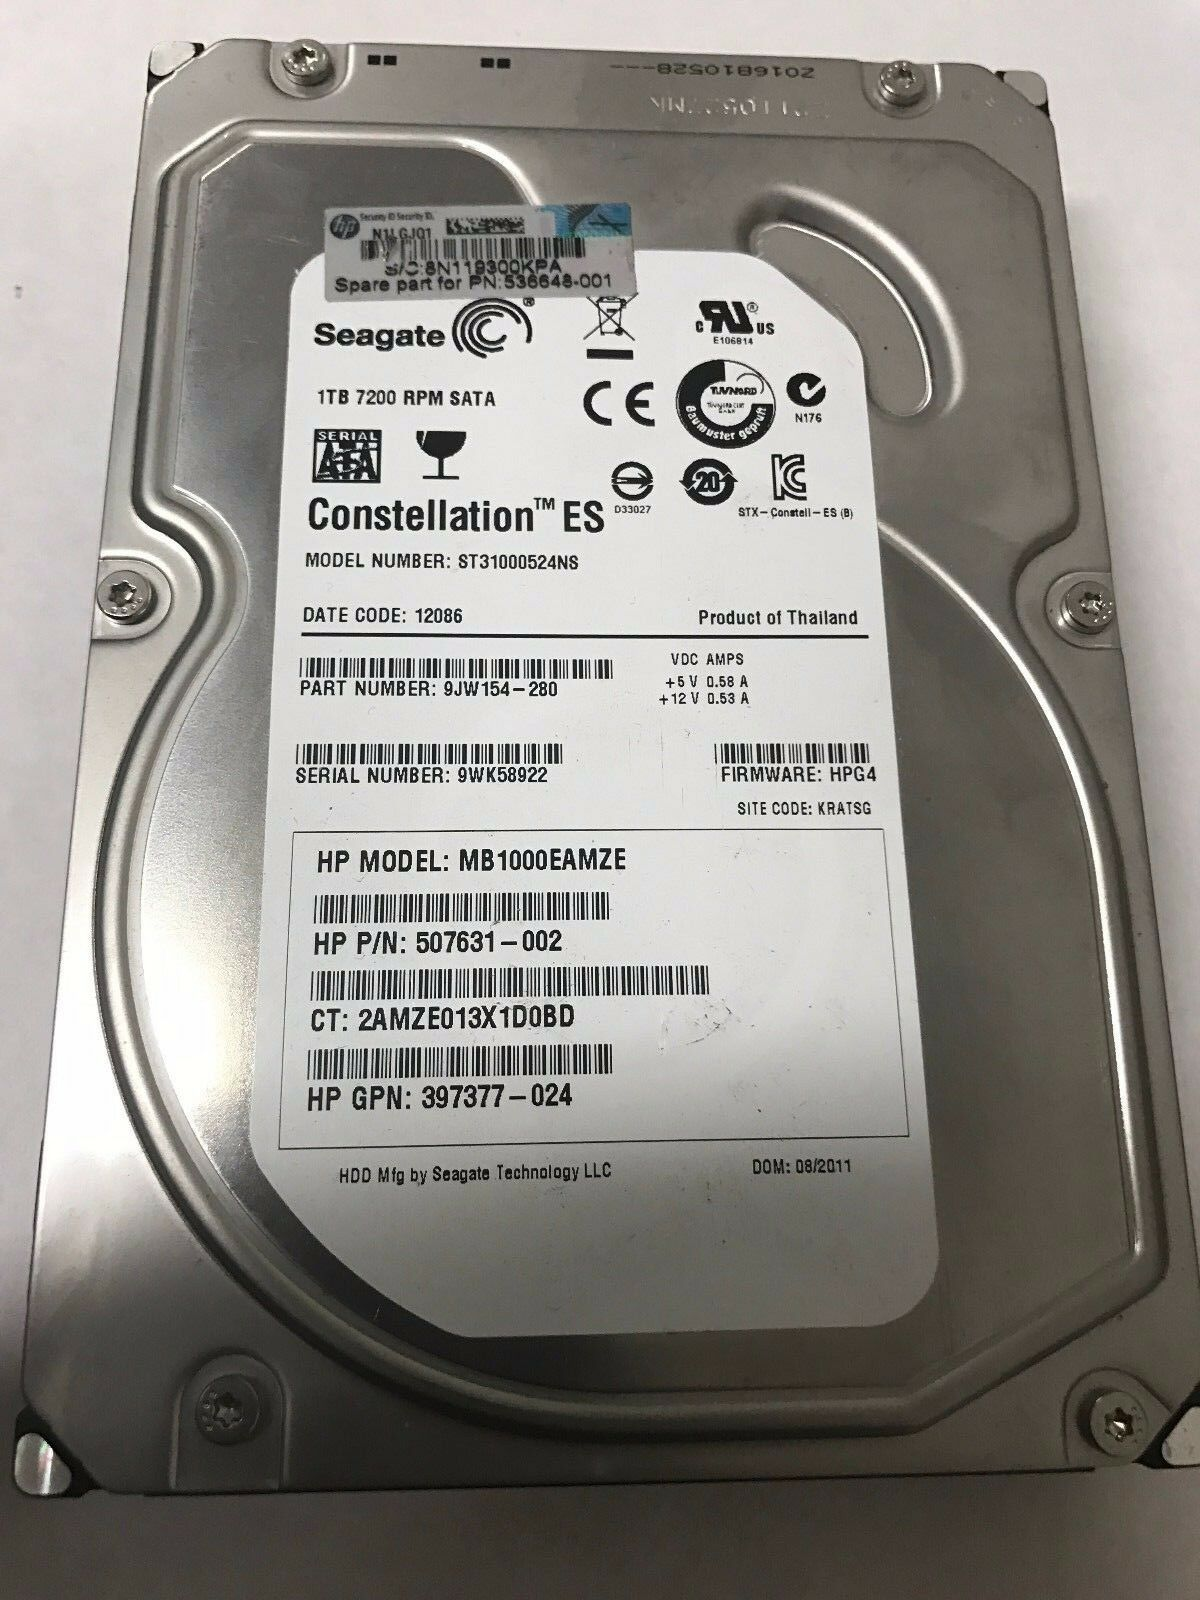 St31000524ns 9jw154 280 Fw Hpg3 Seagate 1tb Sata 35 Hp 50763 002 Firecuda Inch 2tb Sshd 5 Years Warranty Hddssd For Pc Gaming 1 Of See More